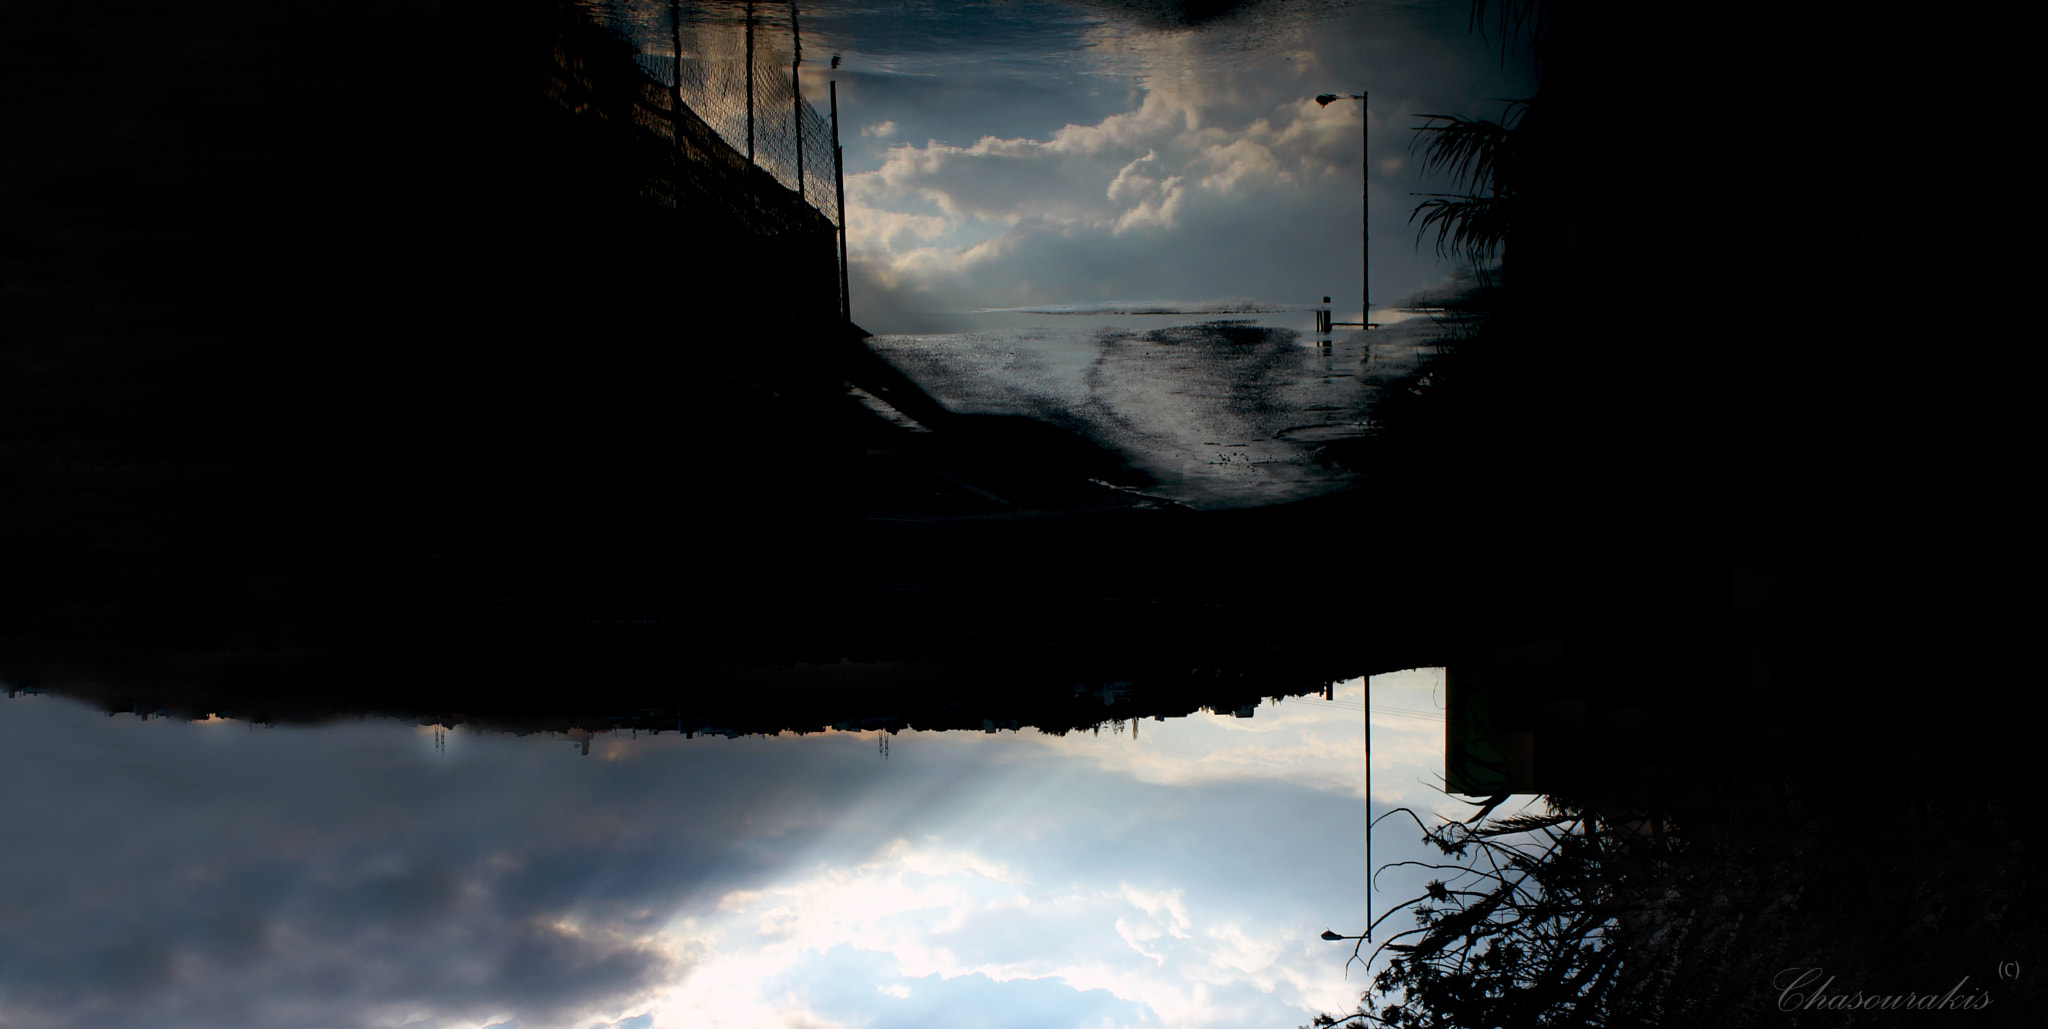 Photograph Upside down by Giorgio Chasourakis on 500px